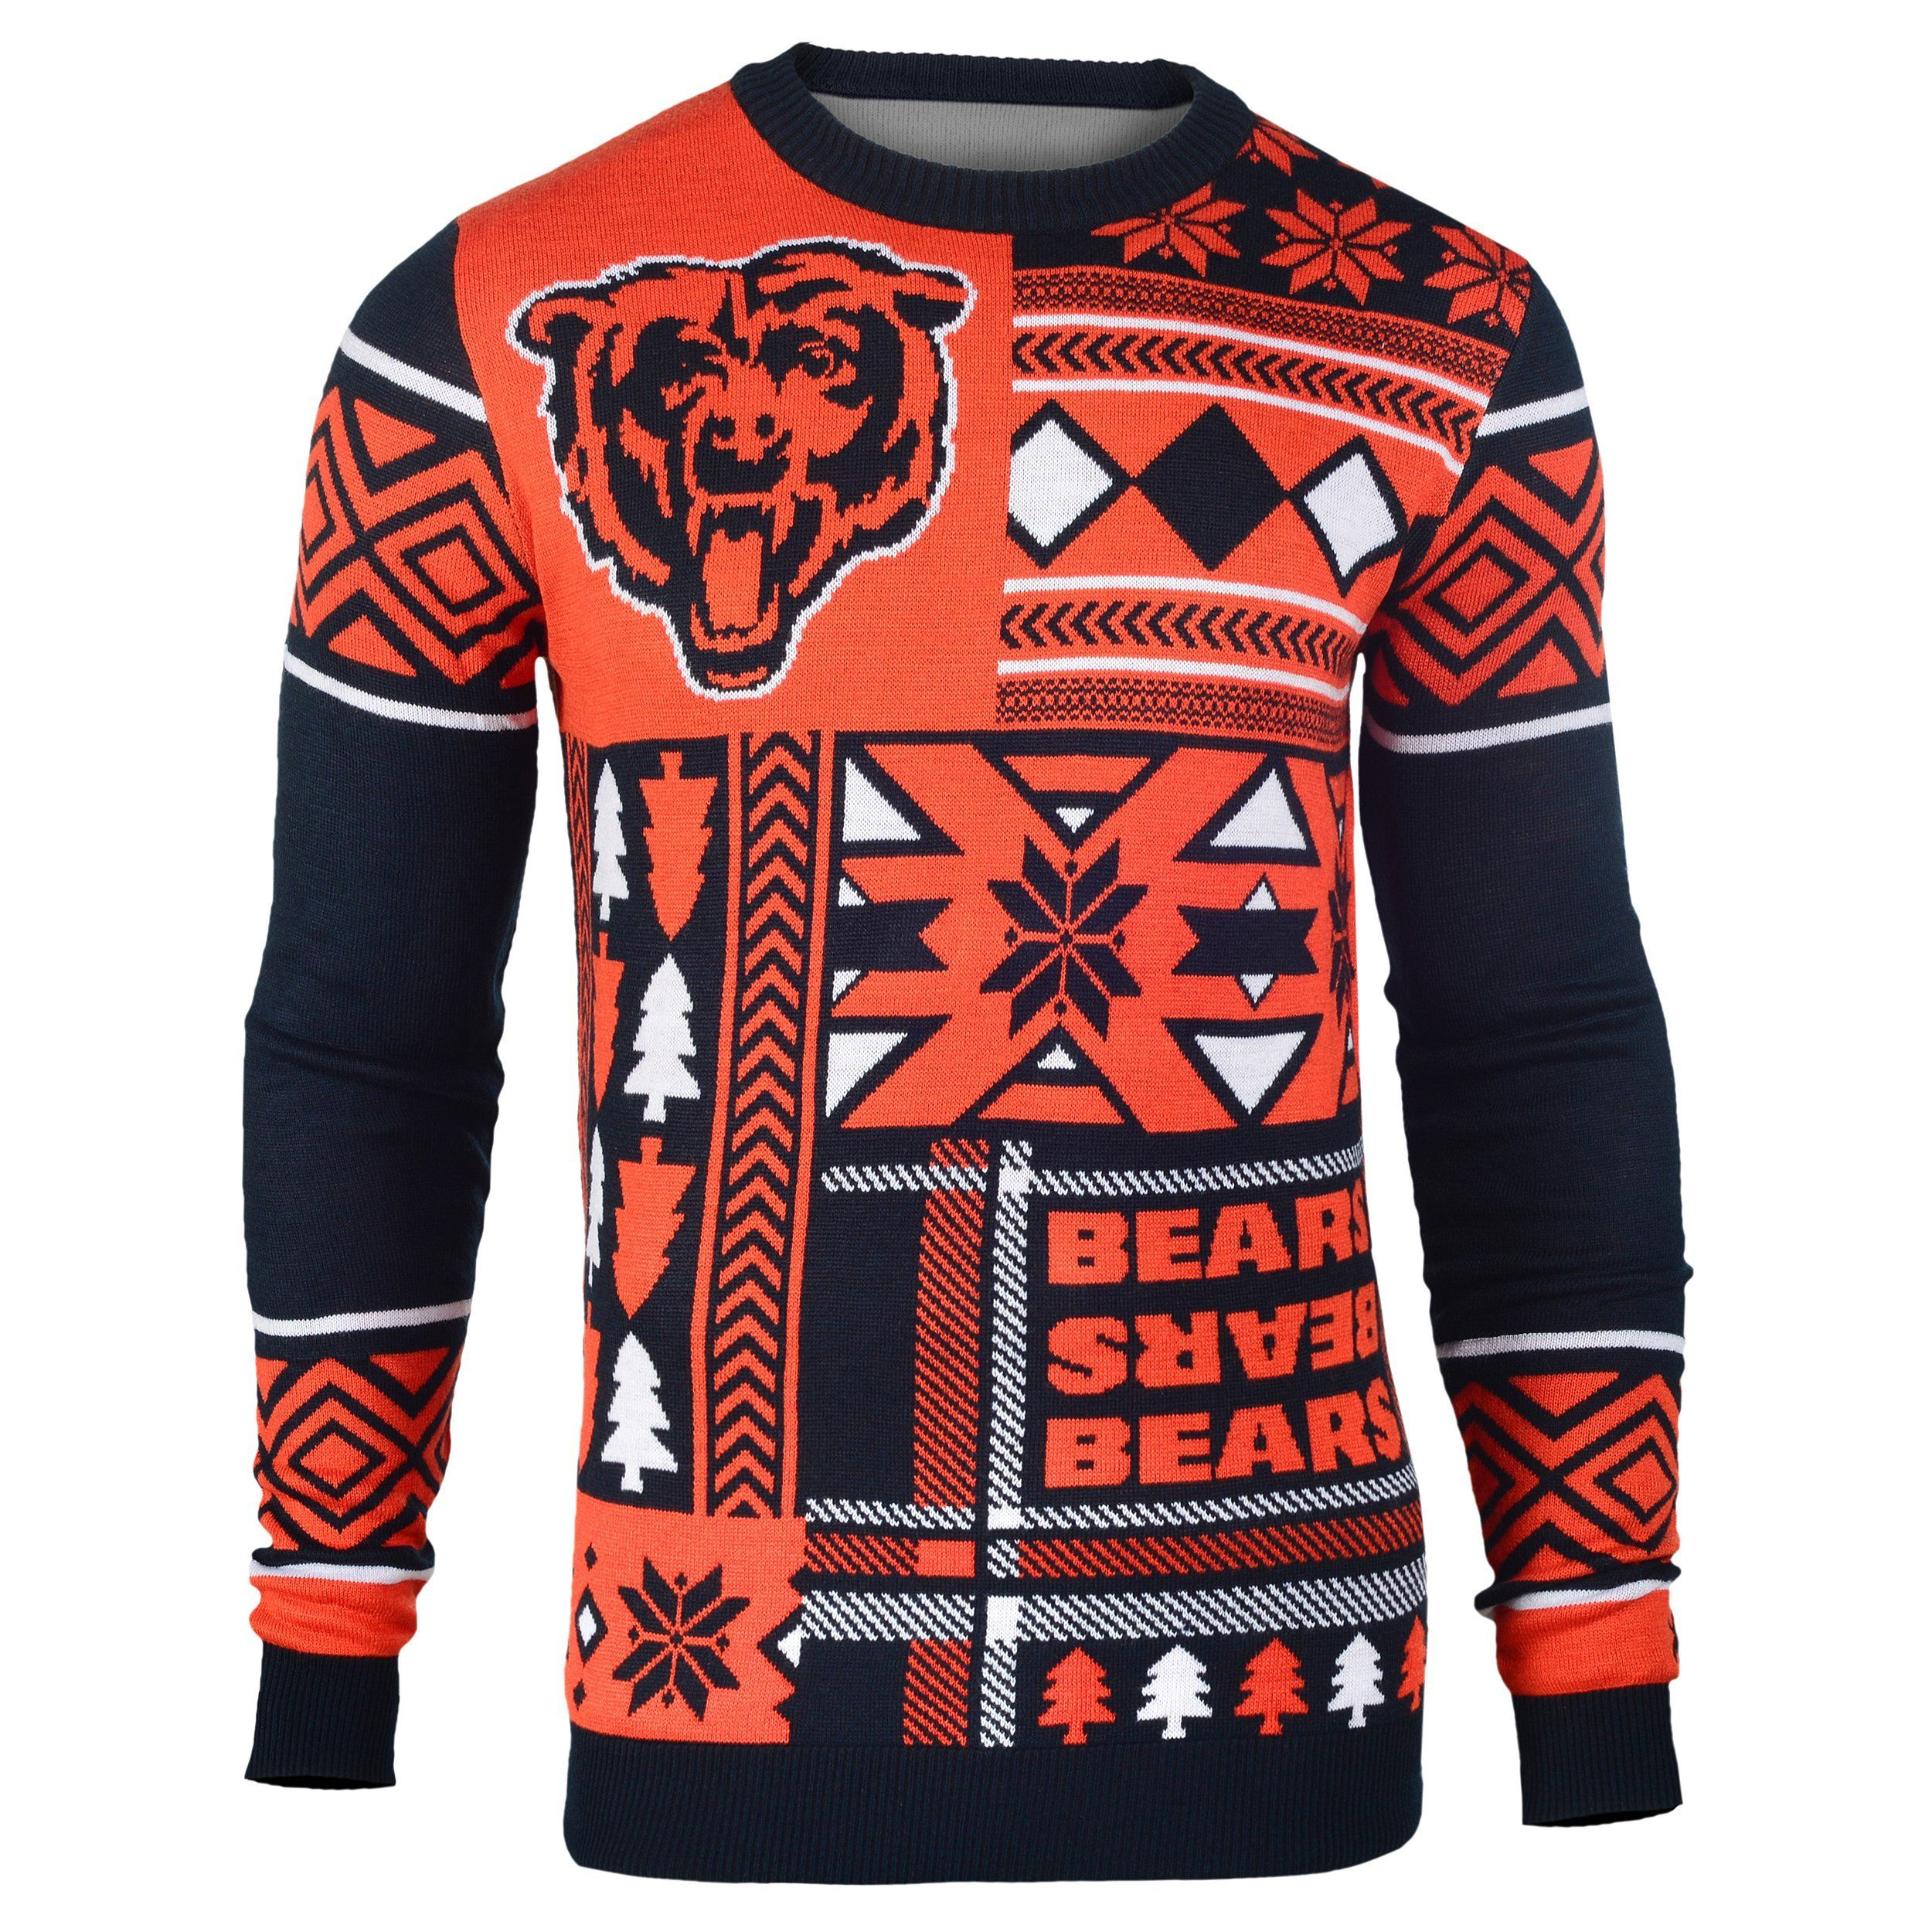 Design your own t shirt chicago - Host Your Own Ugly Christmas Sweater Party In Chicago Ugly Sweaters By City